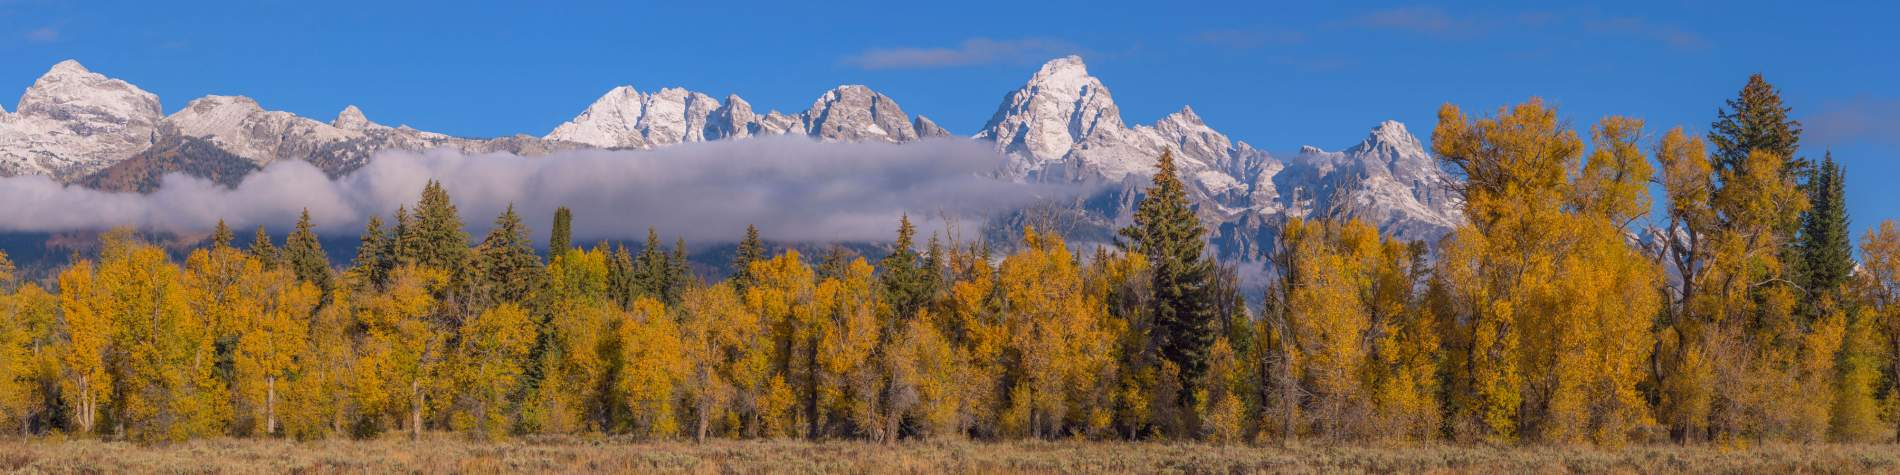 Grand Teton Mountain Range, Wyoming